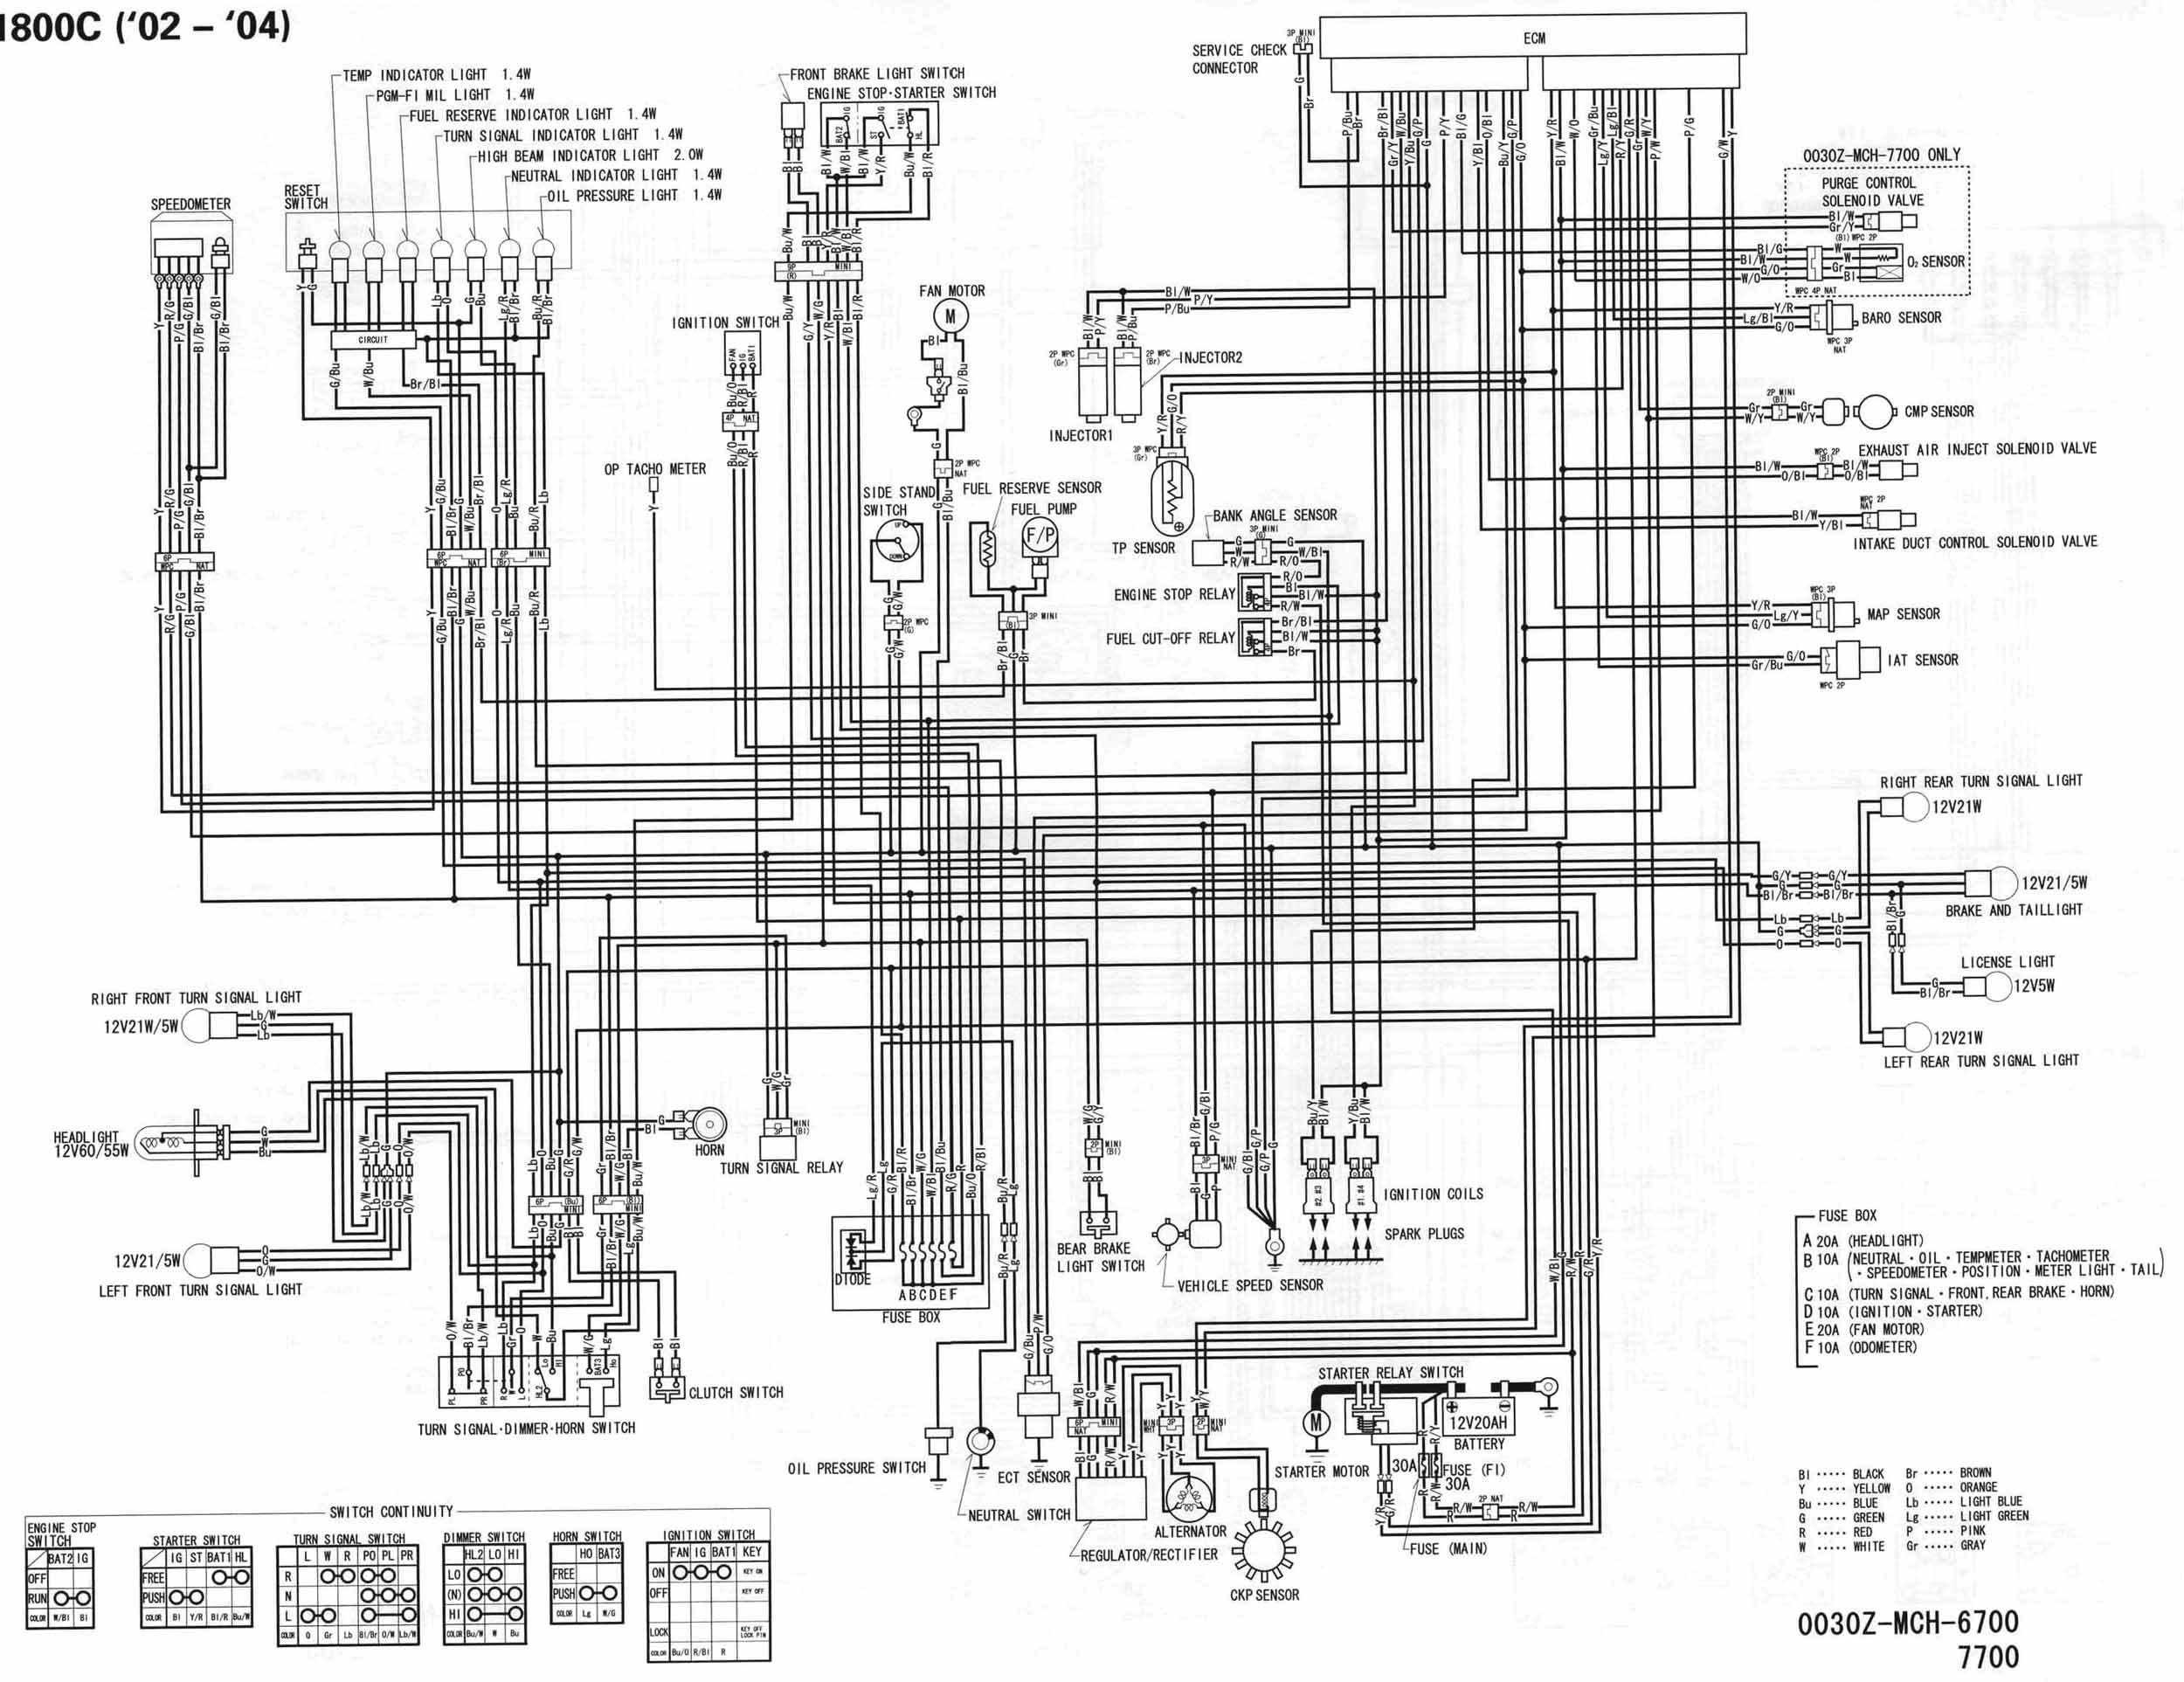 wiring diagram for a 2004 honda vtx 1300 c wiring diagram